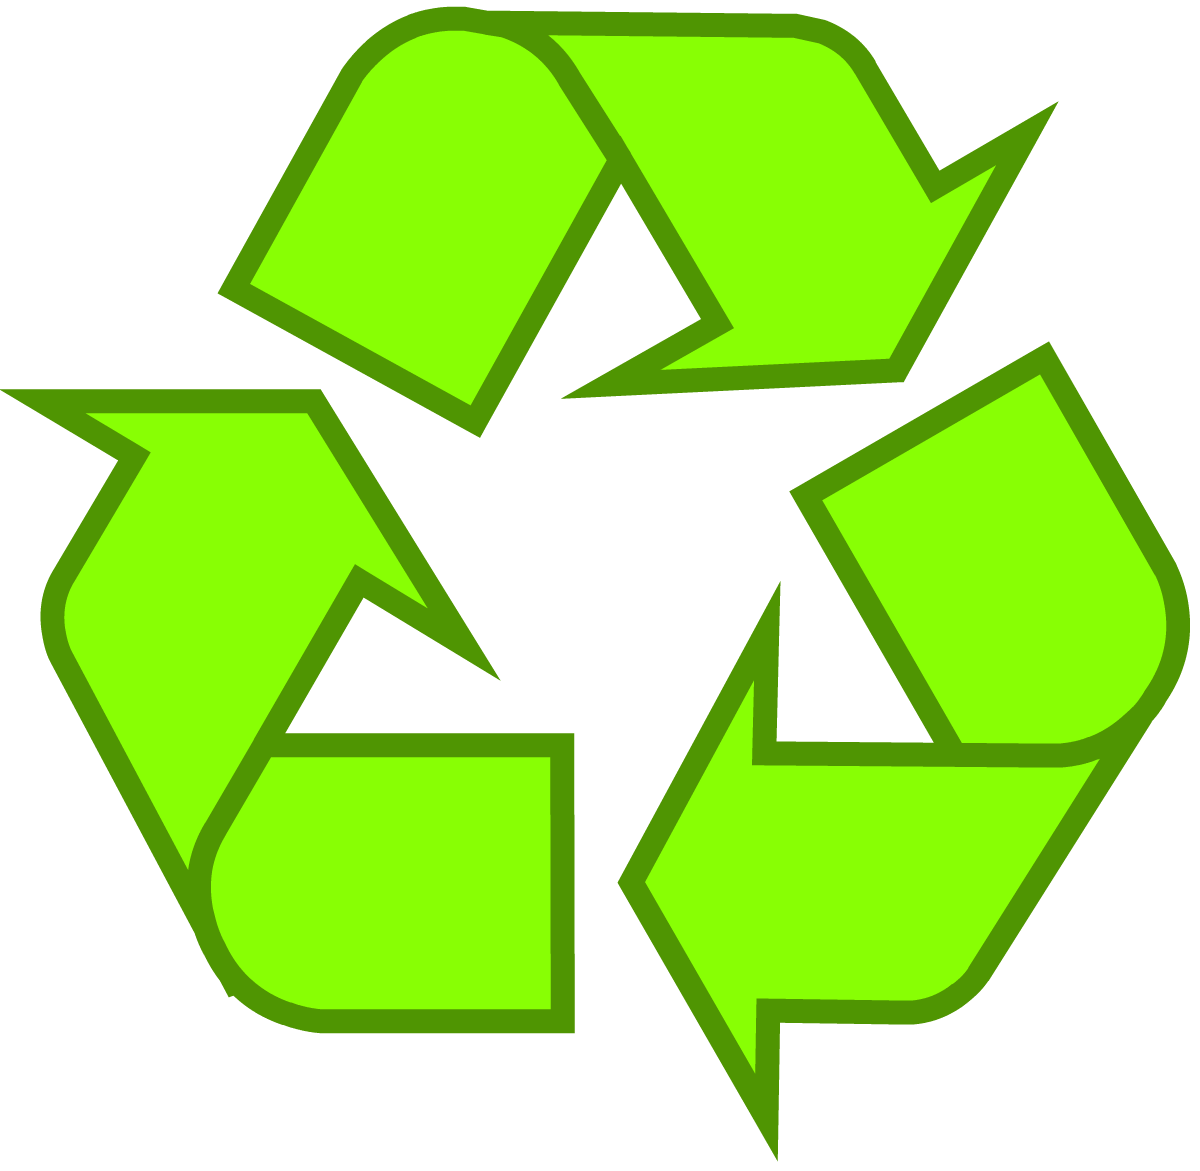 Vector packaging background. Download recycling symbol the